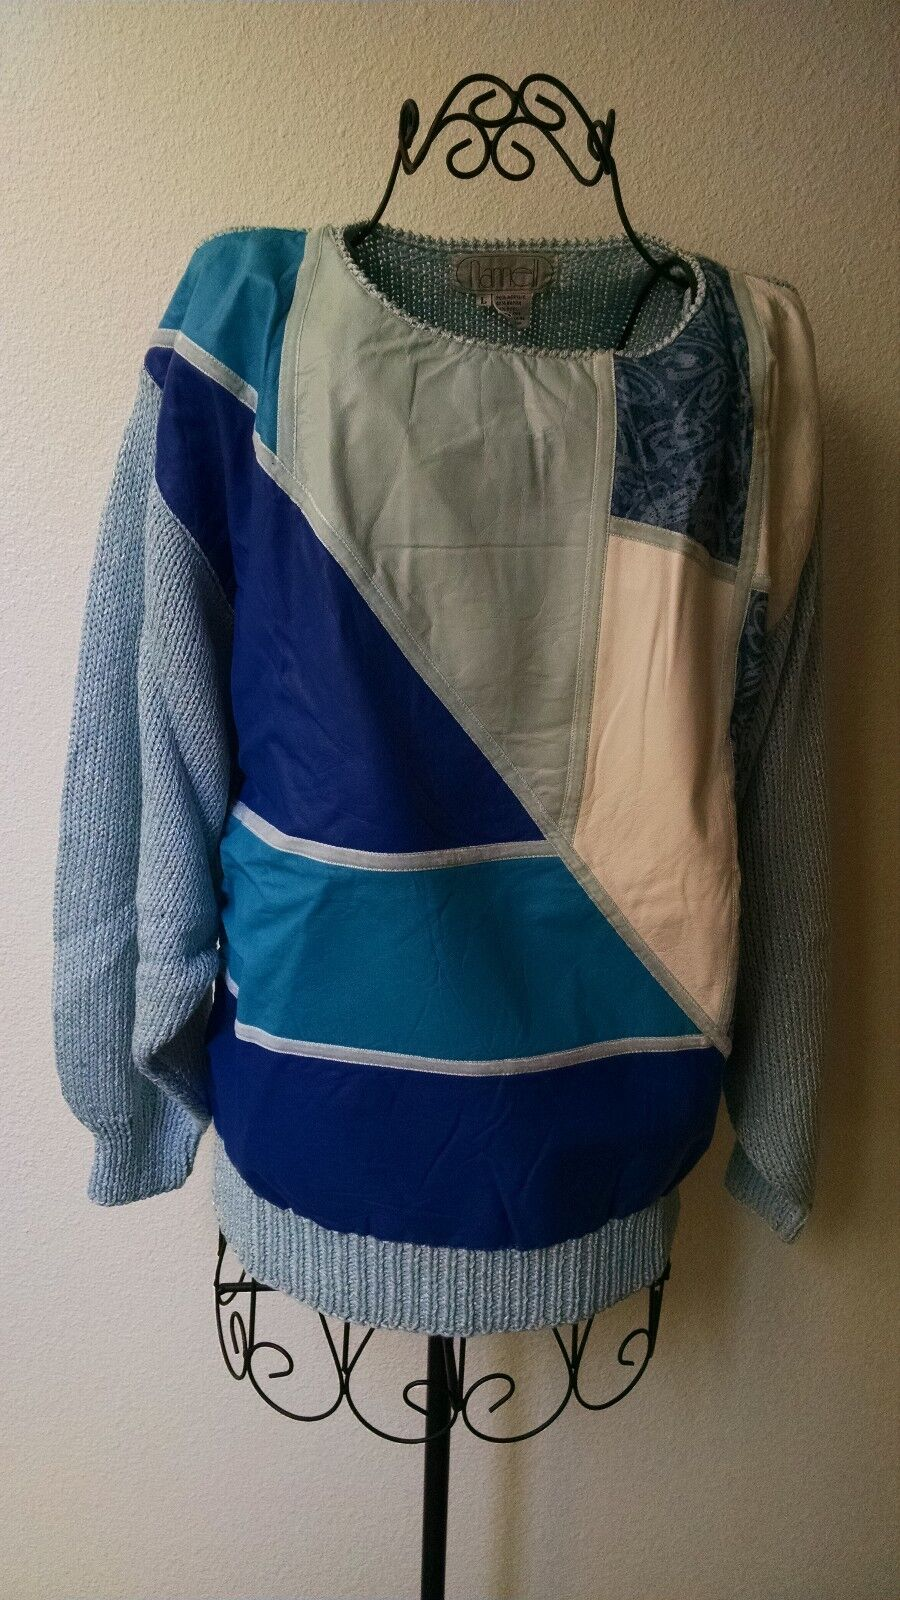 Nannell Collectors Hand Knit Sweater bluee Multi colord Size Lg, Item